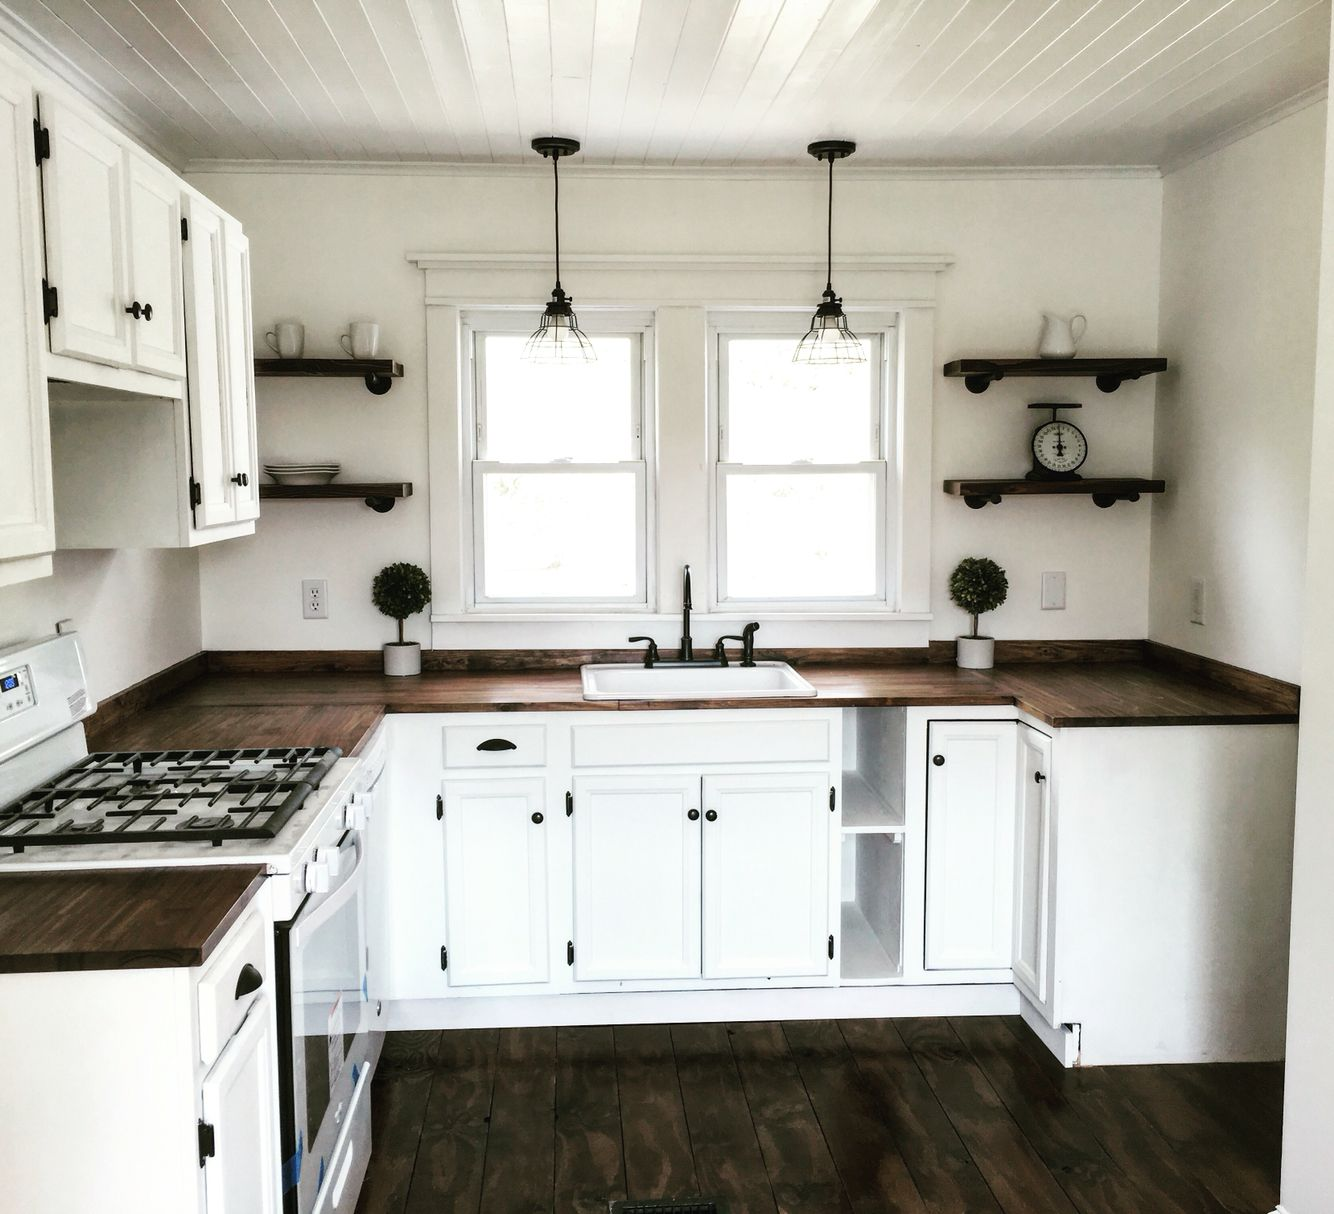 Farmhouse Kitchen On The Cheap Cabinets From Craigslist